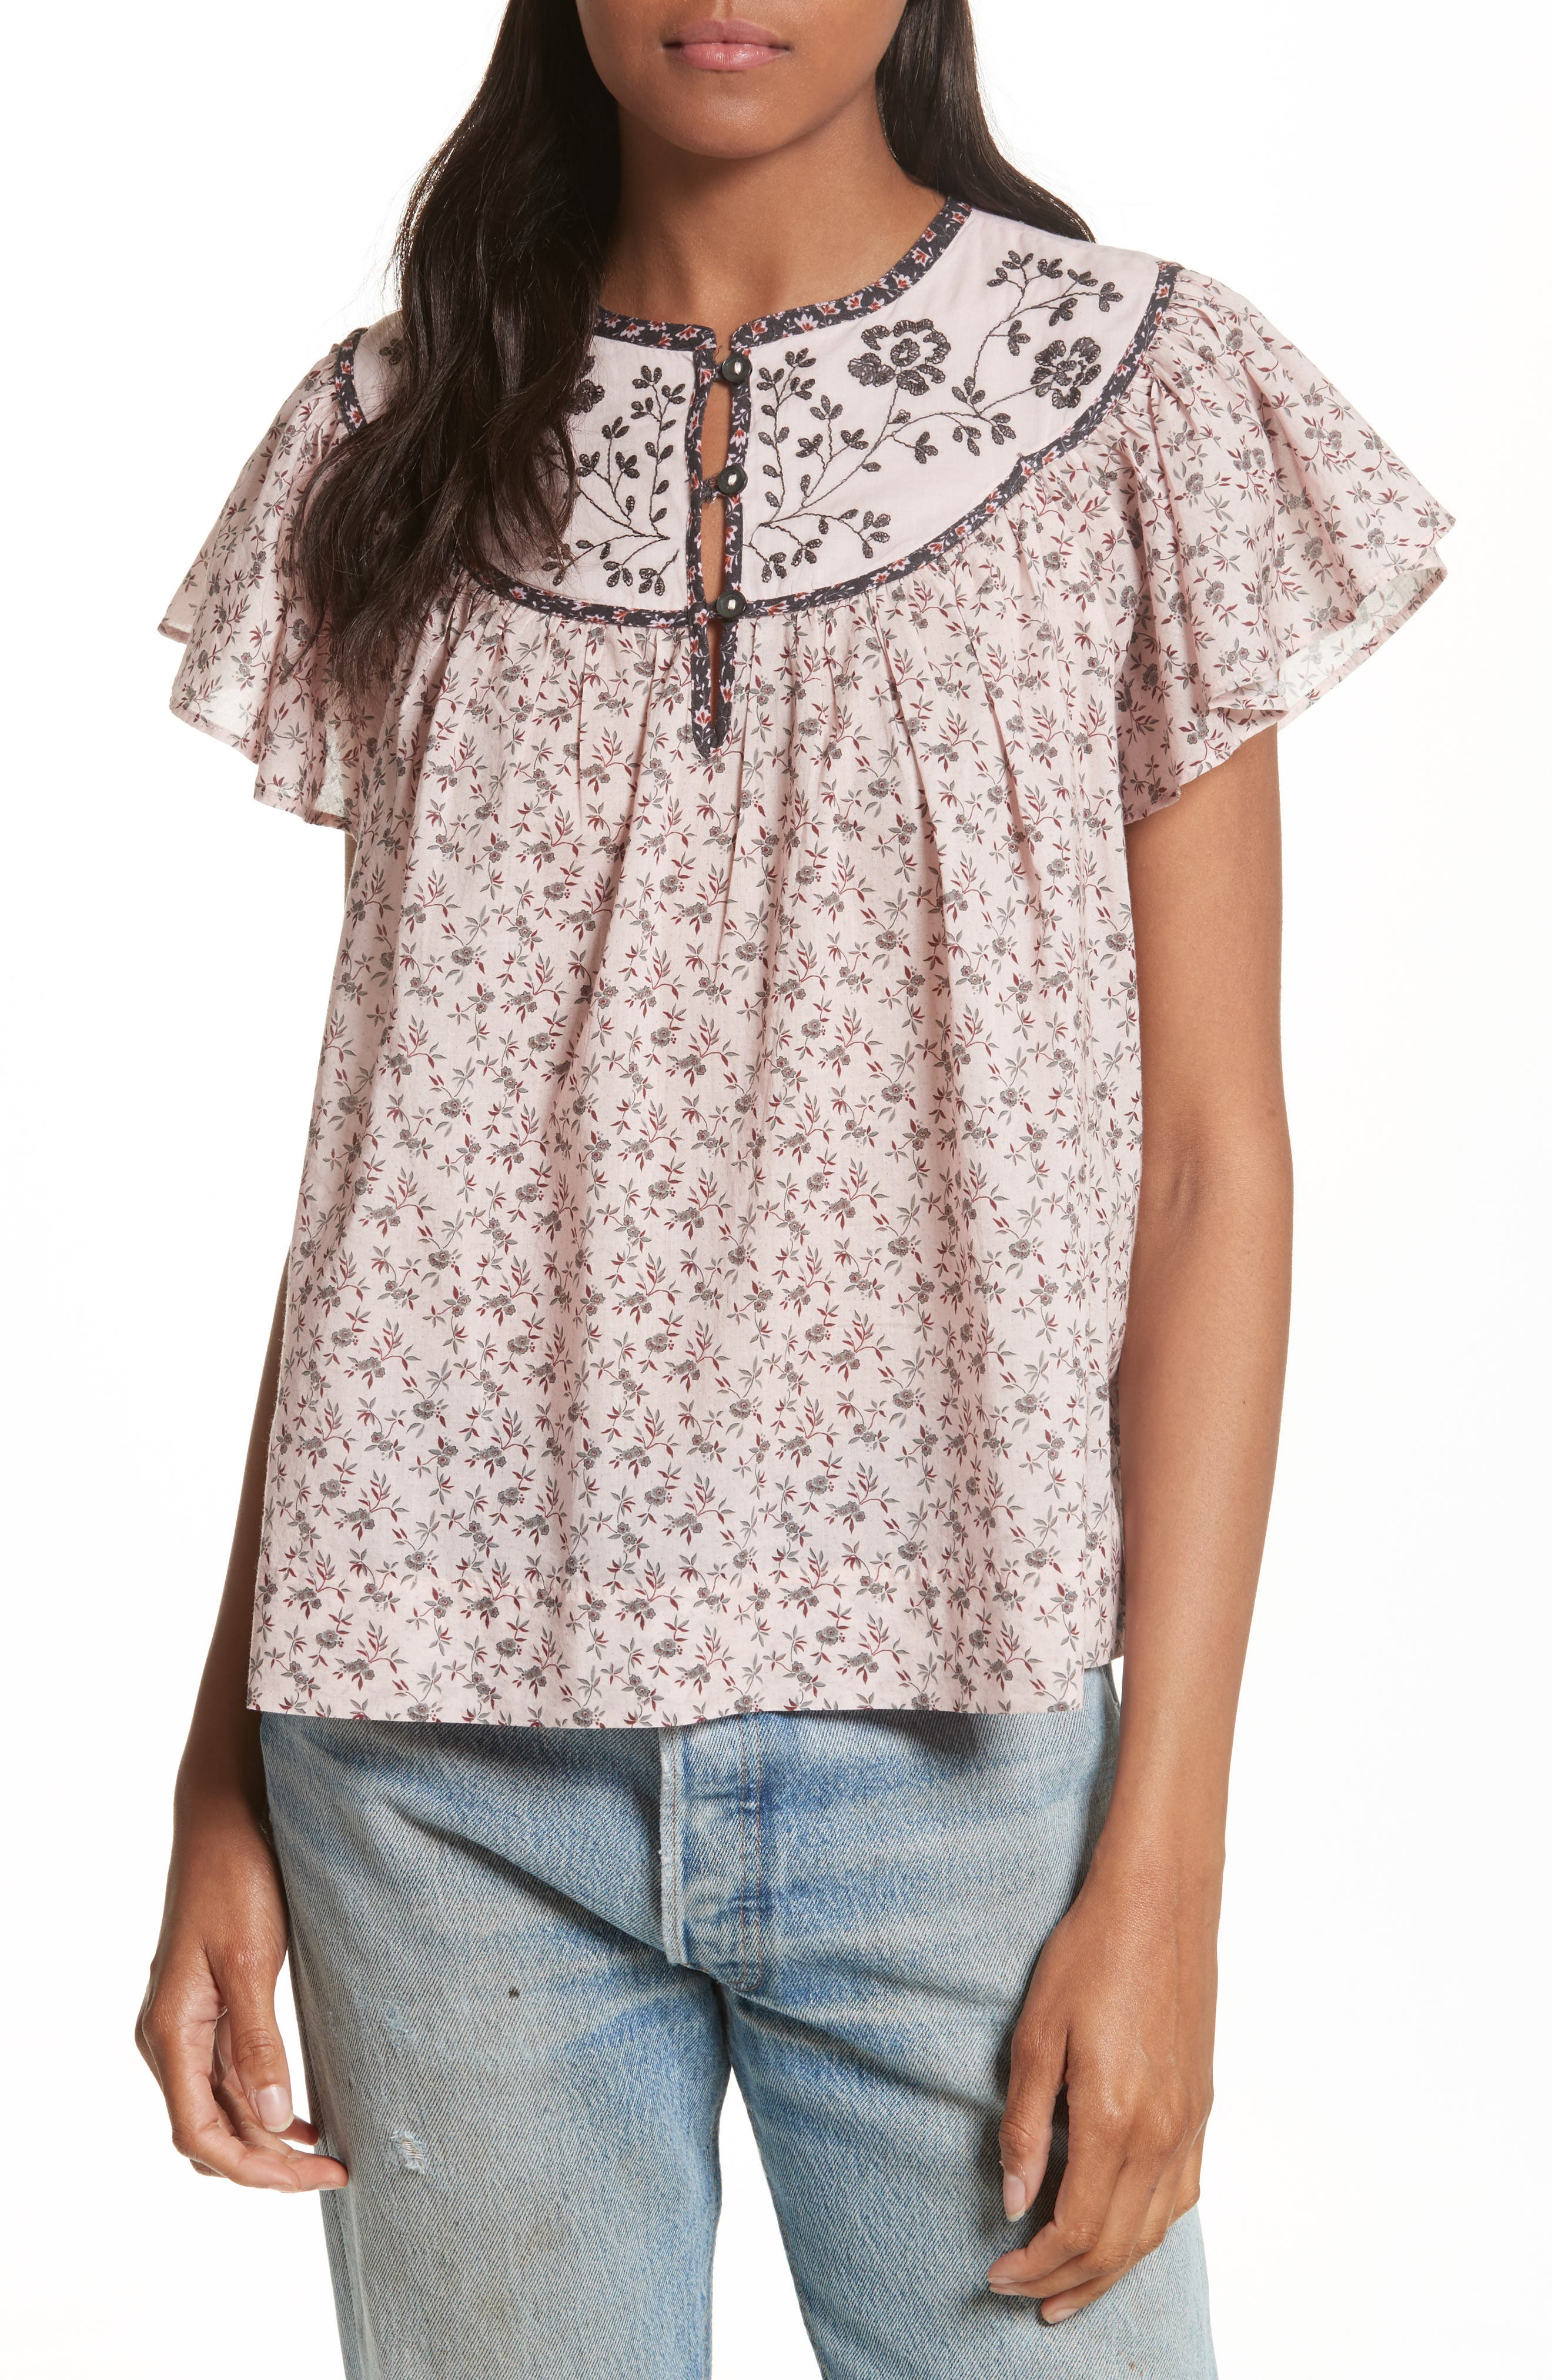 La Vie Rebecca Taylor Embroidered Yoke Top